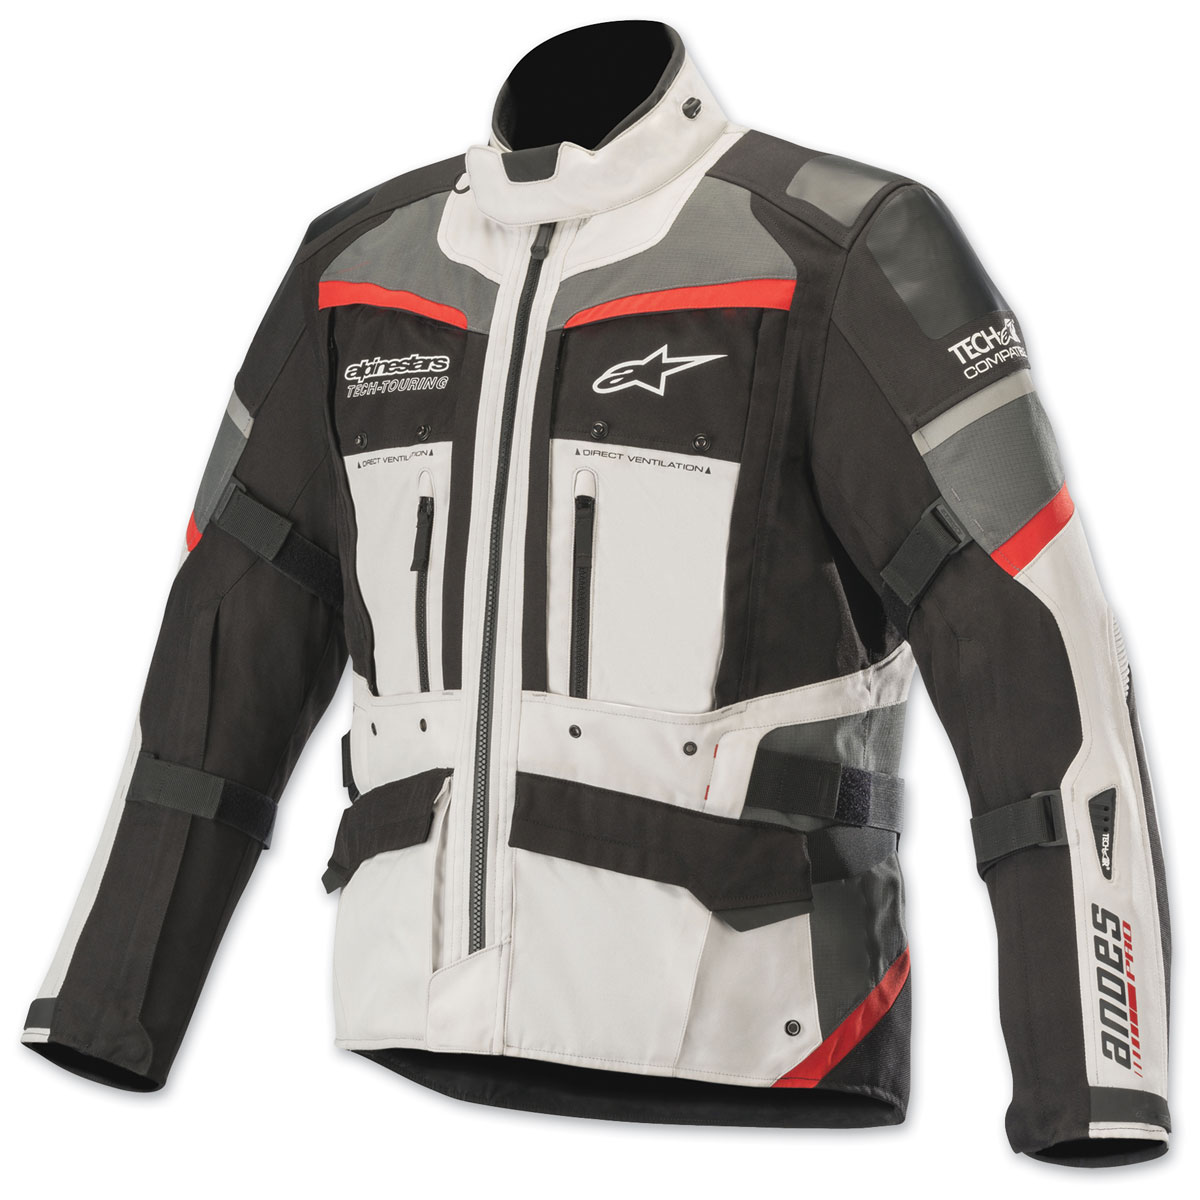 Alpinestars Men's Andies Pro Drystar Gray/Black/Red Jacket